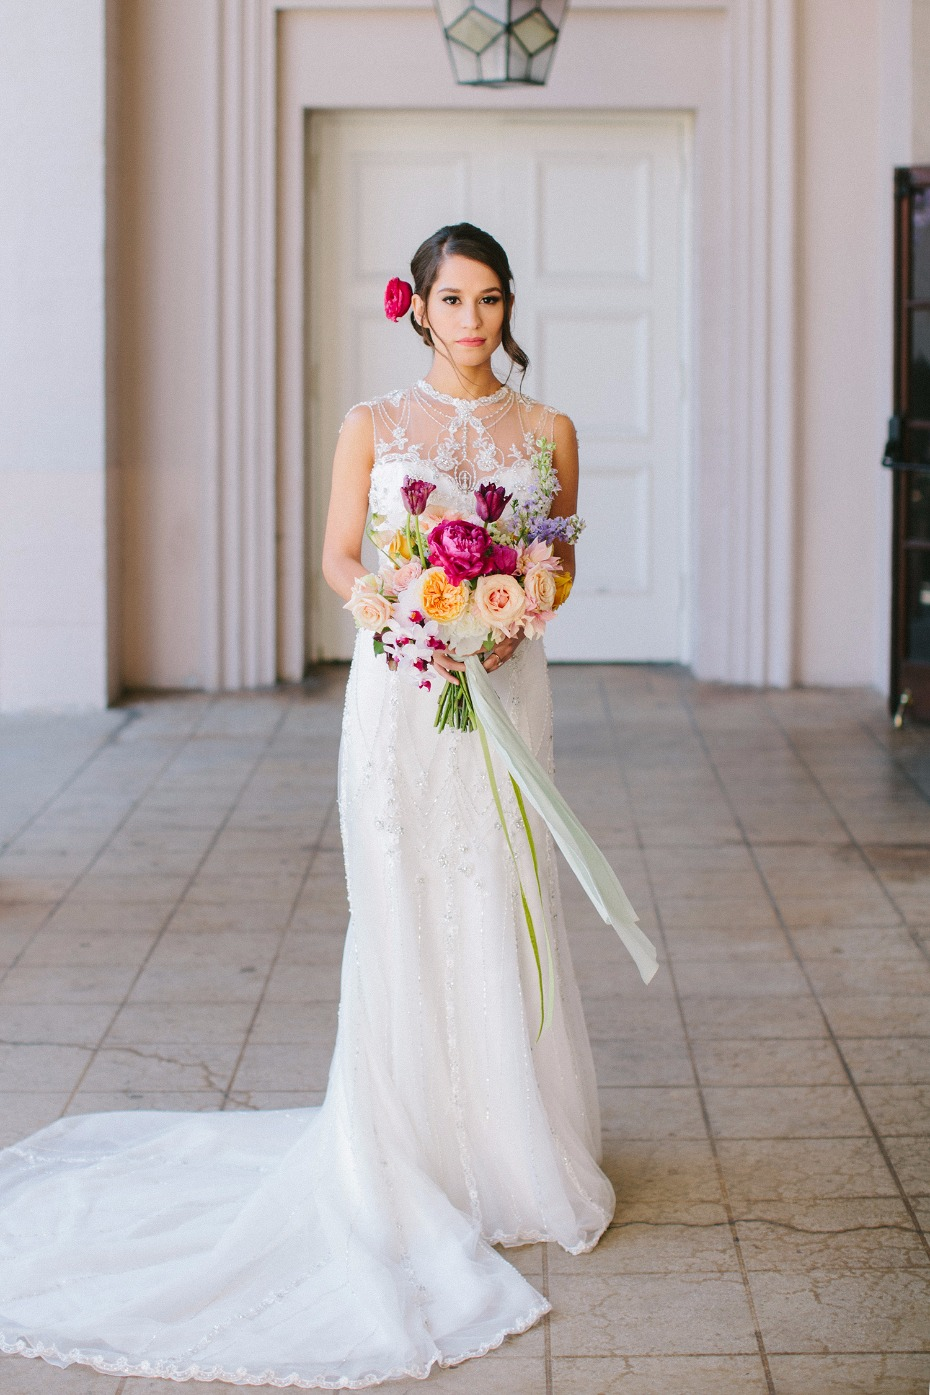 Gorgeous bridal look with a colorful bouquet